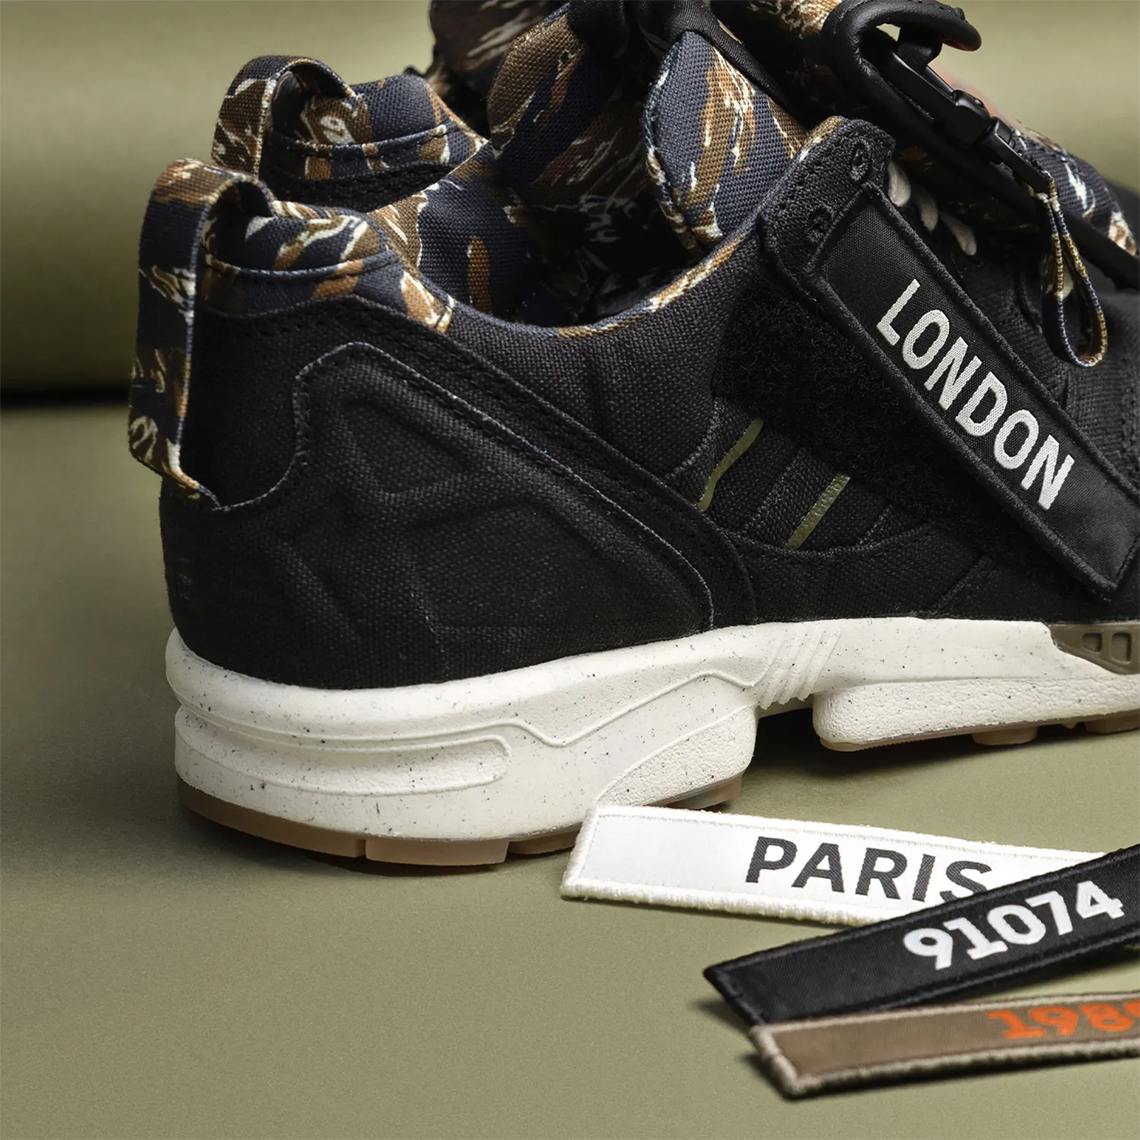 adidas-ZX-8000-Out-There-S42592-2.jpg?w=1140